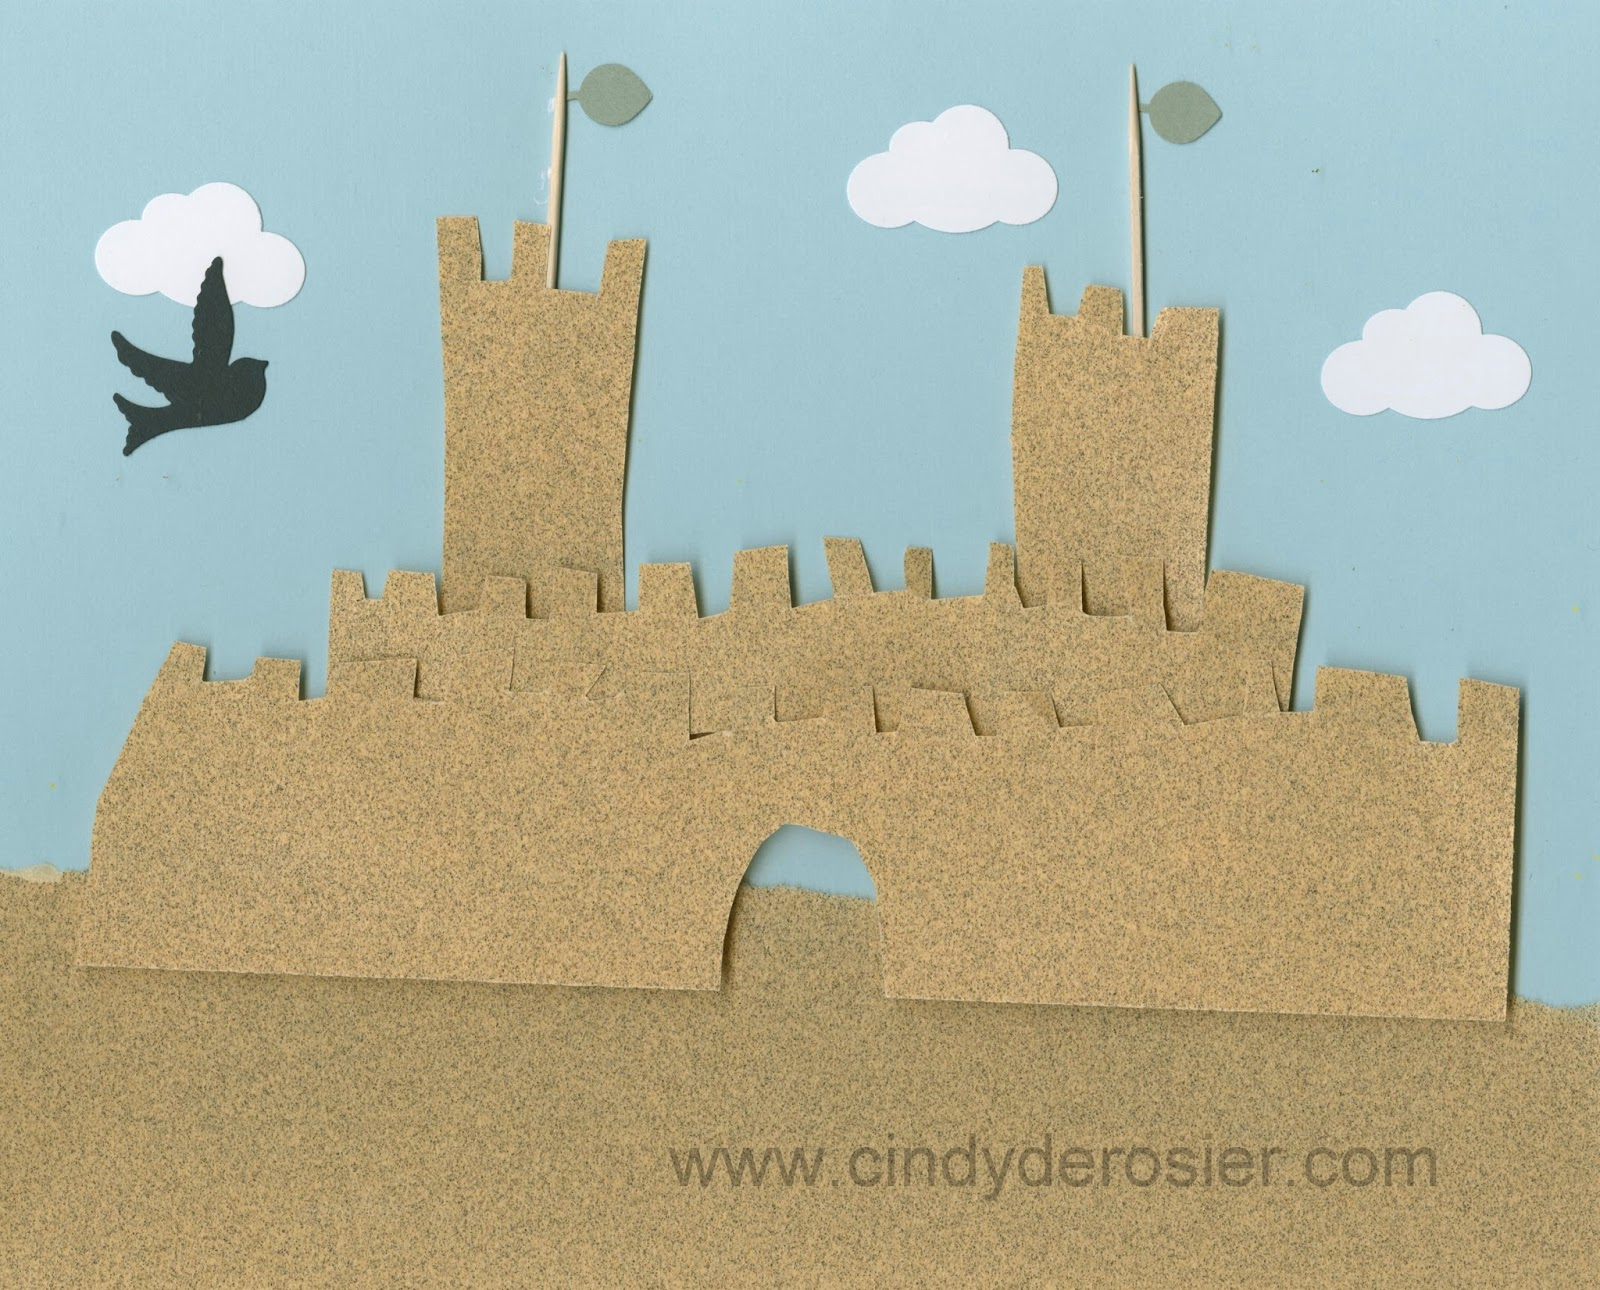 How to build the perfect sandcastle